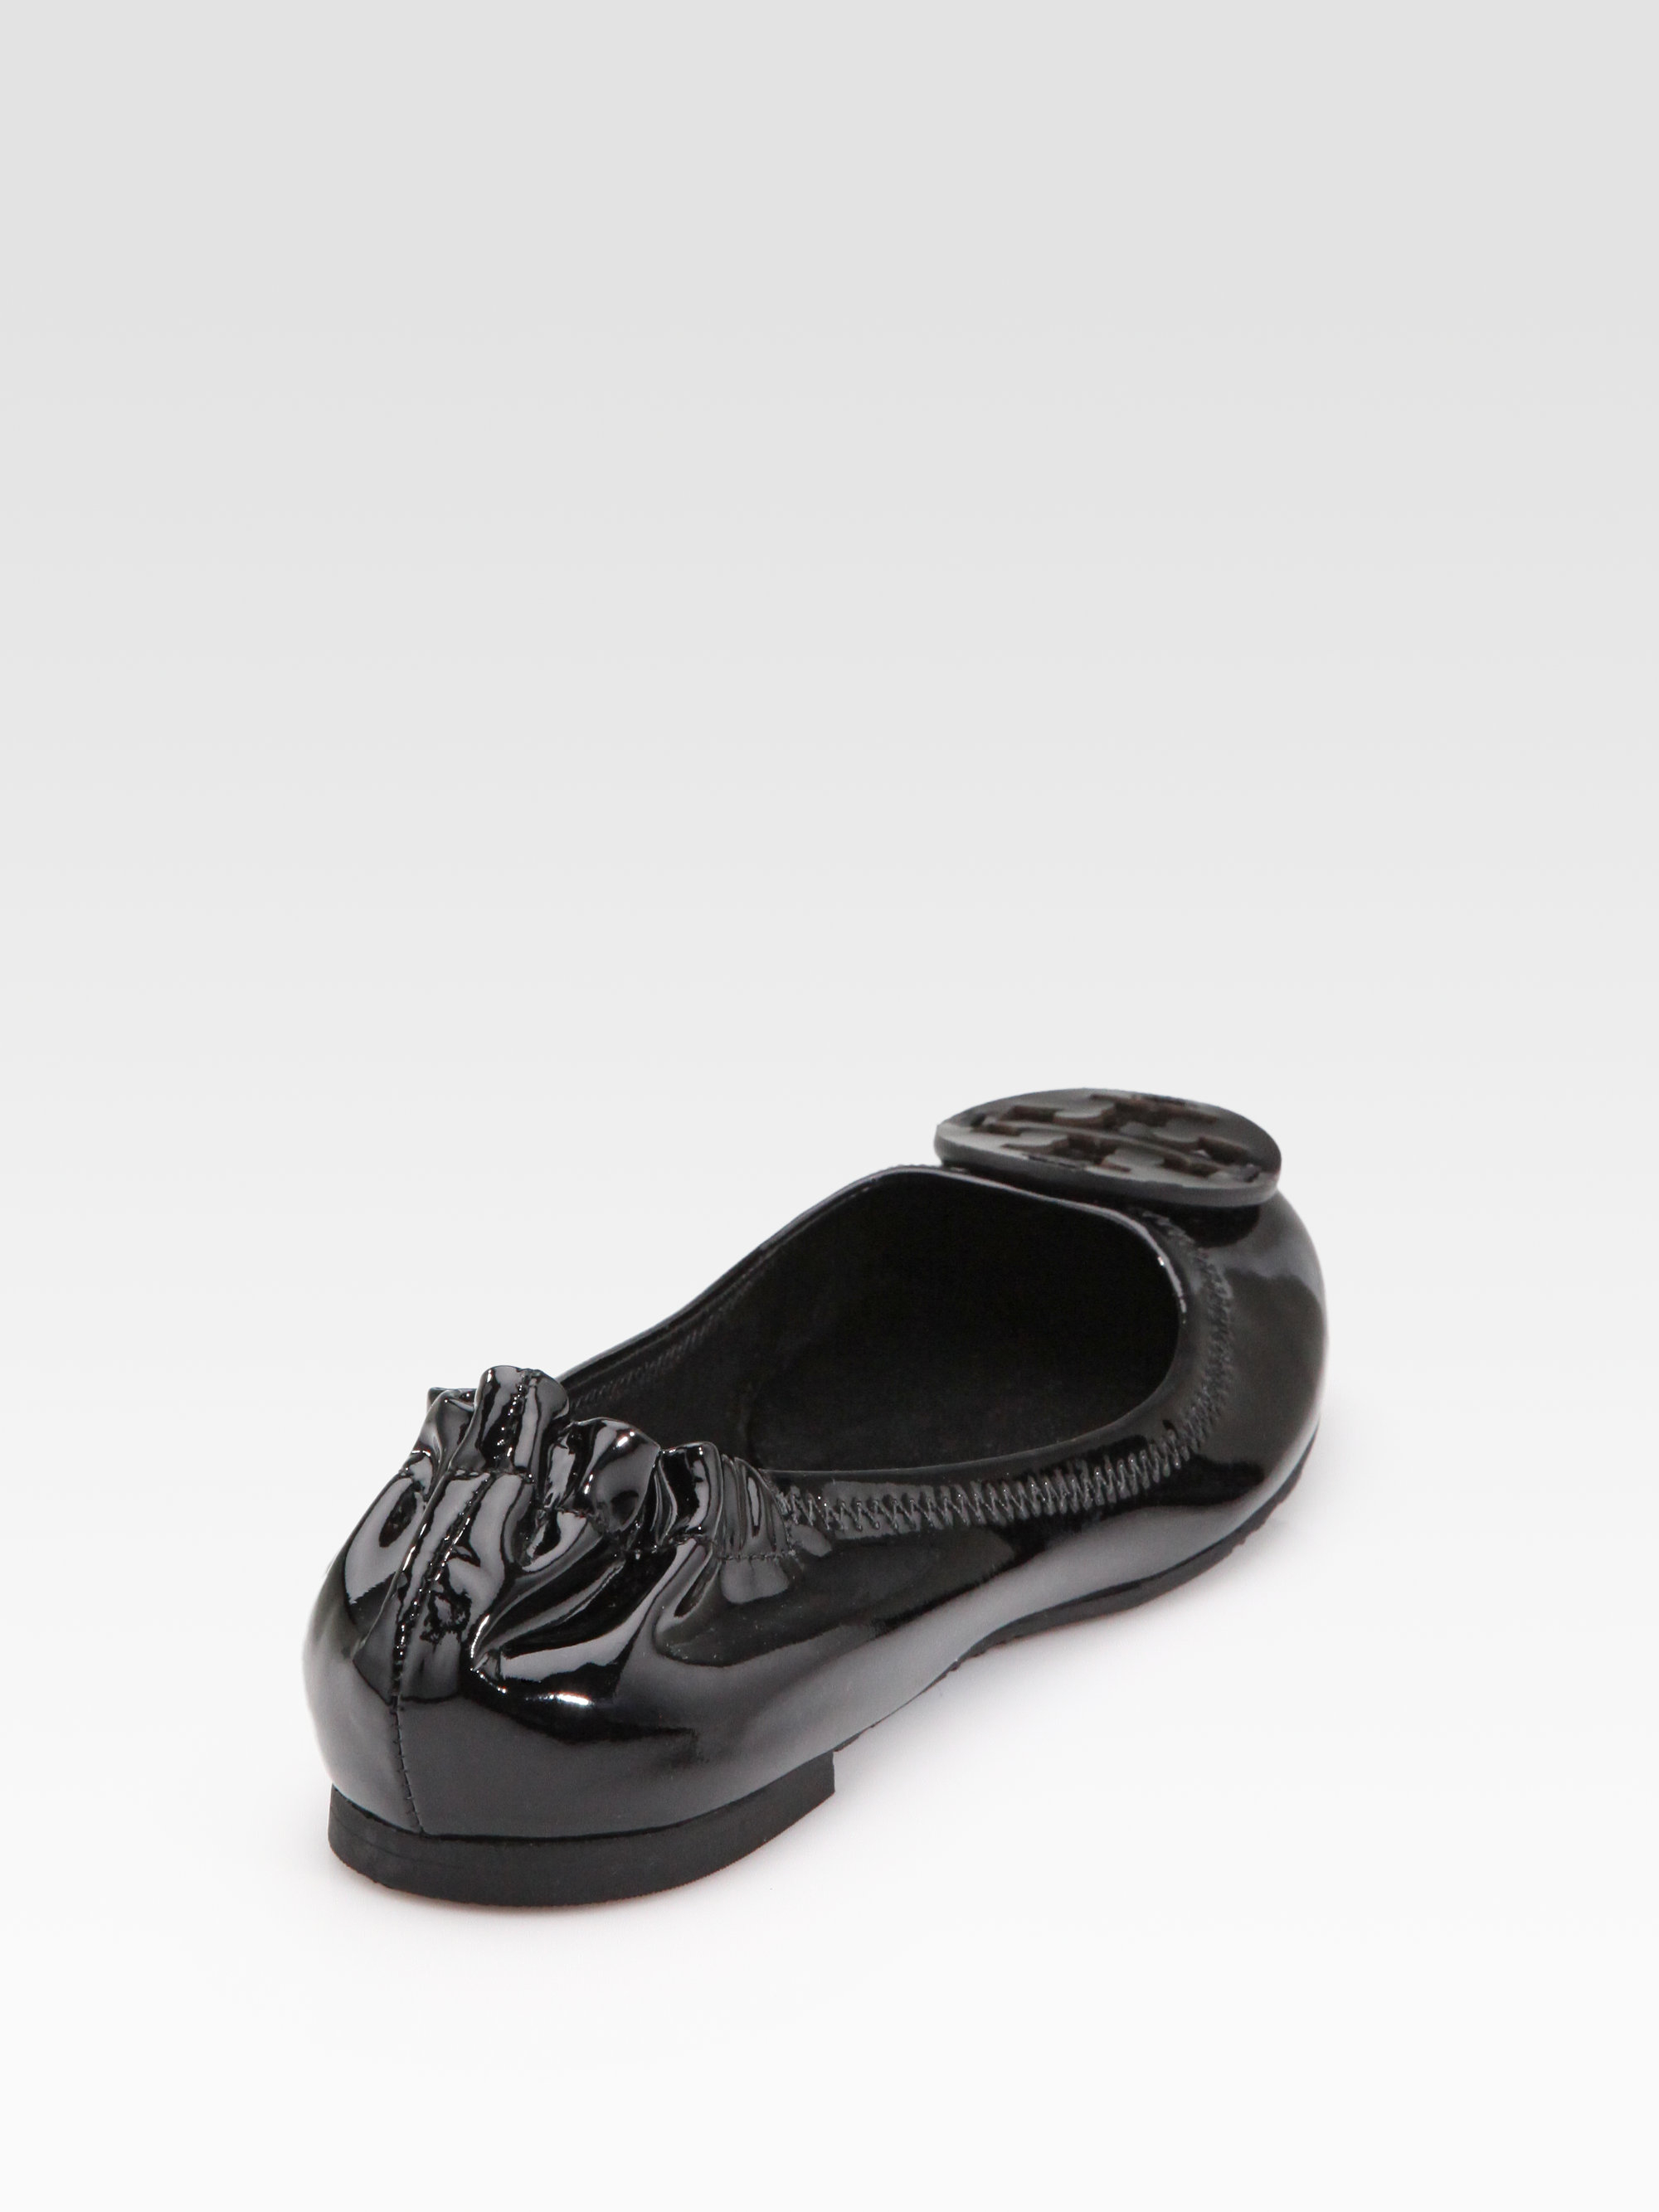 b117983f0f24 ... new zealand lyst tory burch reva patent leather ballet flats in black  6a9b6 9fcac